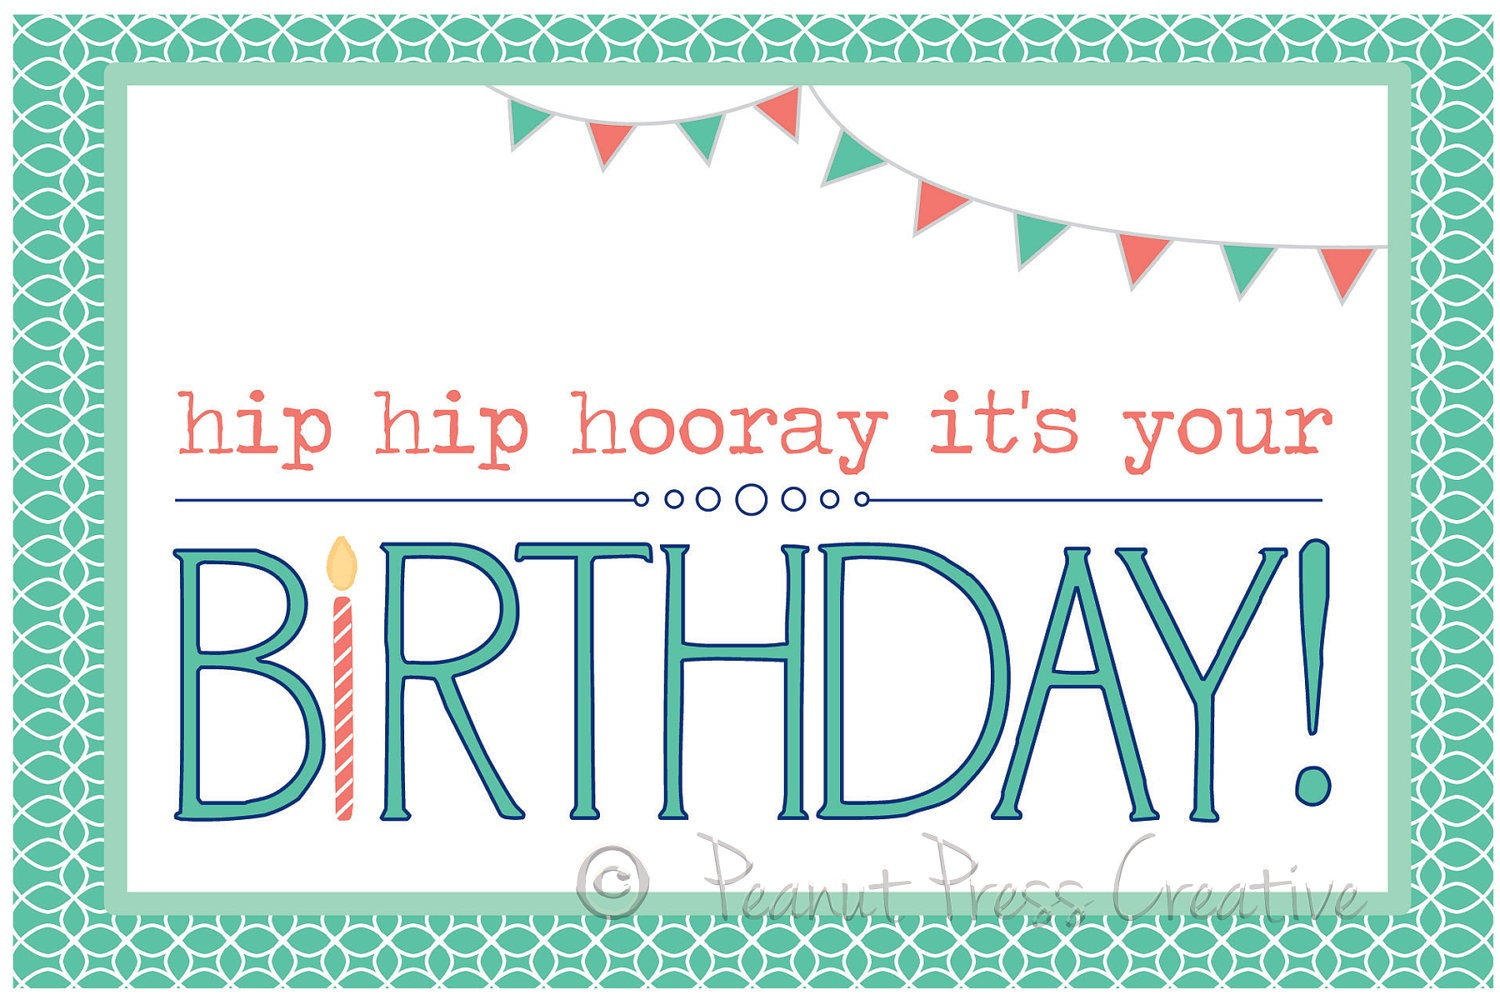 Free Printable Birthday Card Maker - Tutlin.psstech.co - Free Printable Card Maker